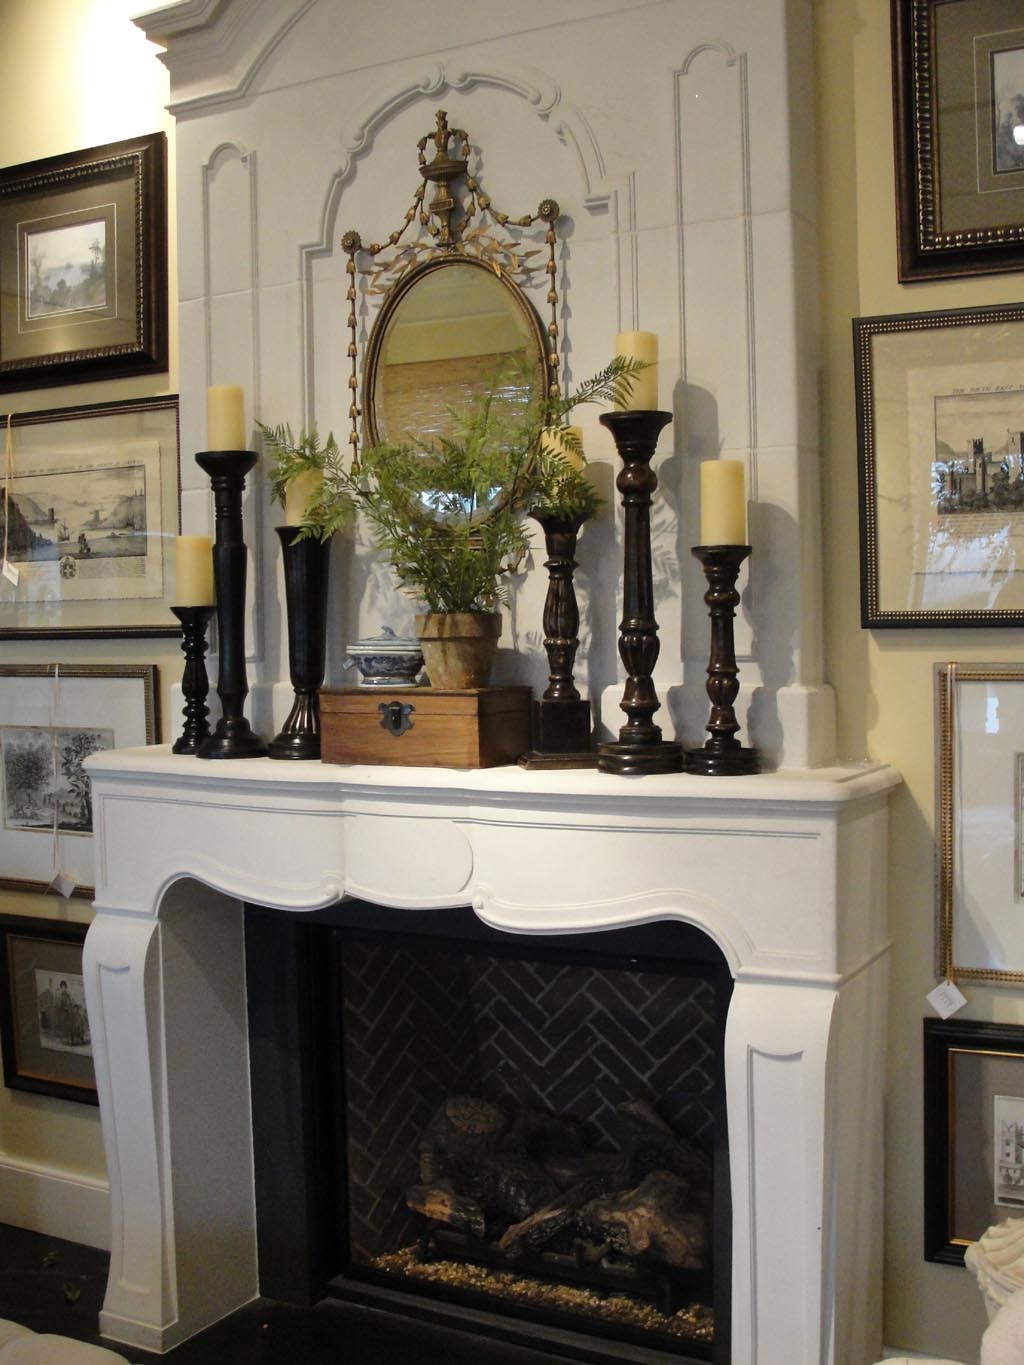 Fireplace Mantel DIY Plans